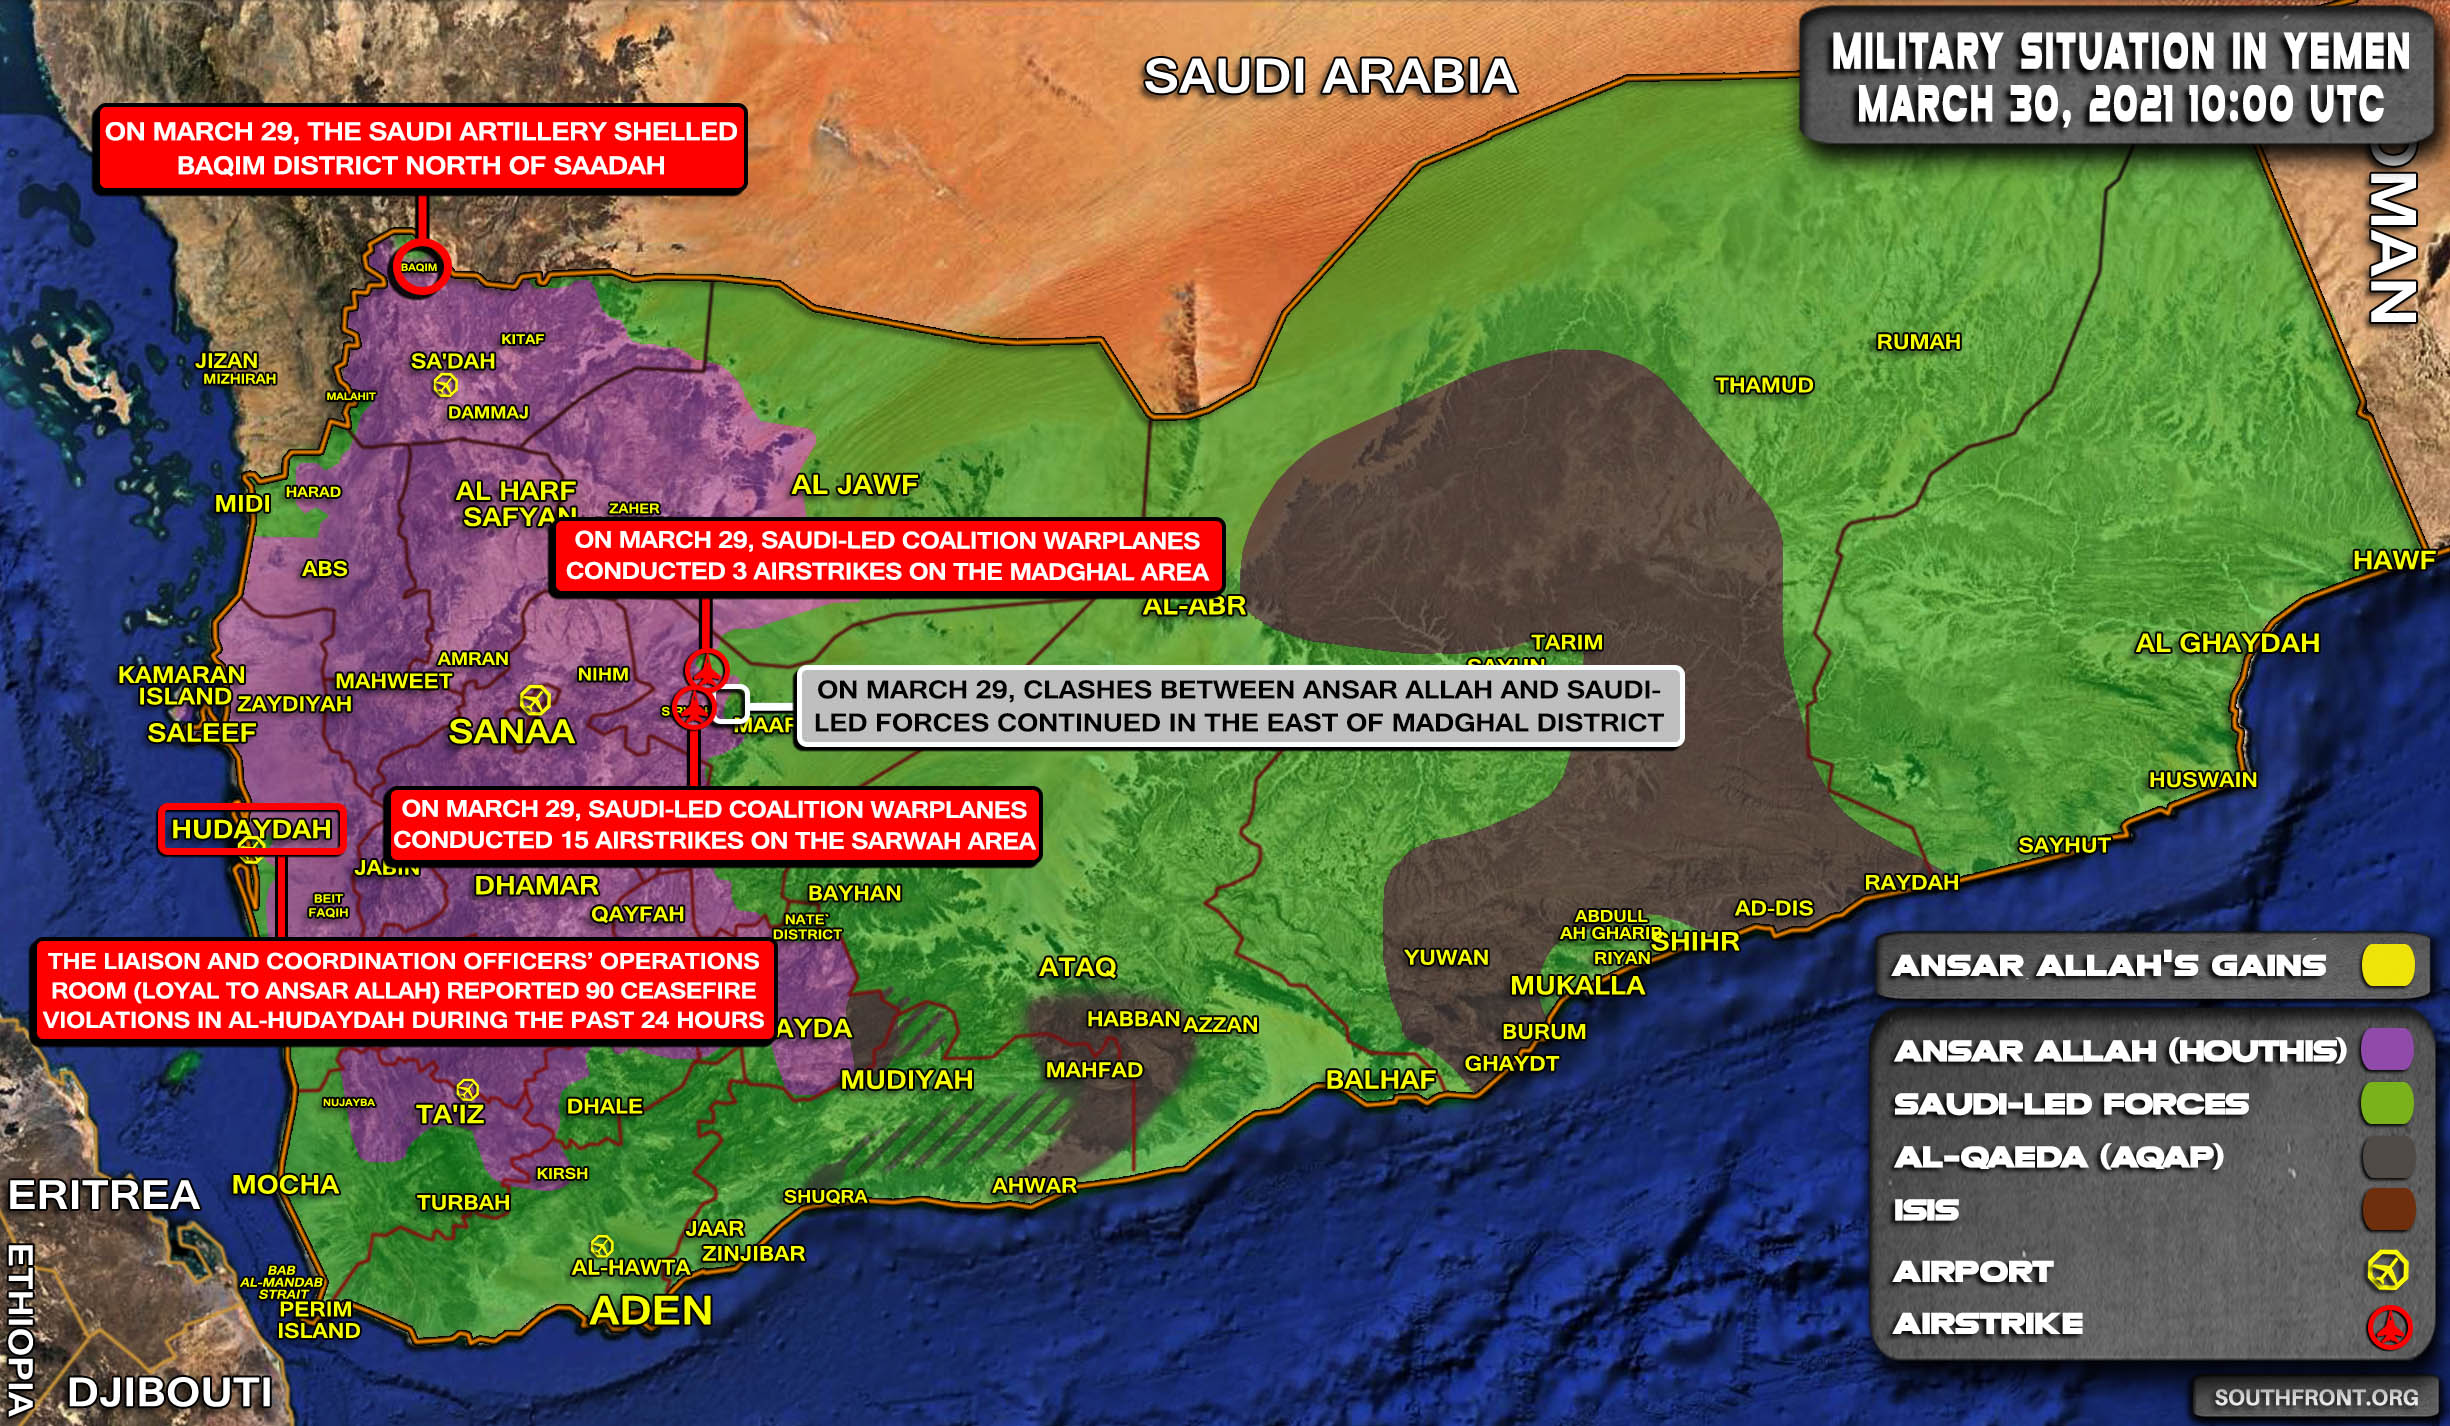 Military Situation In Yemen On March 30, 2021 (Map Update)